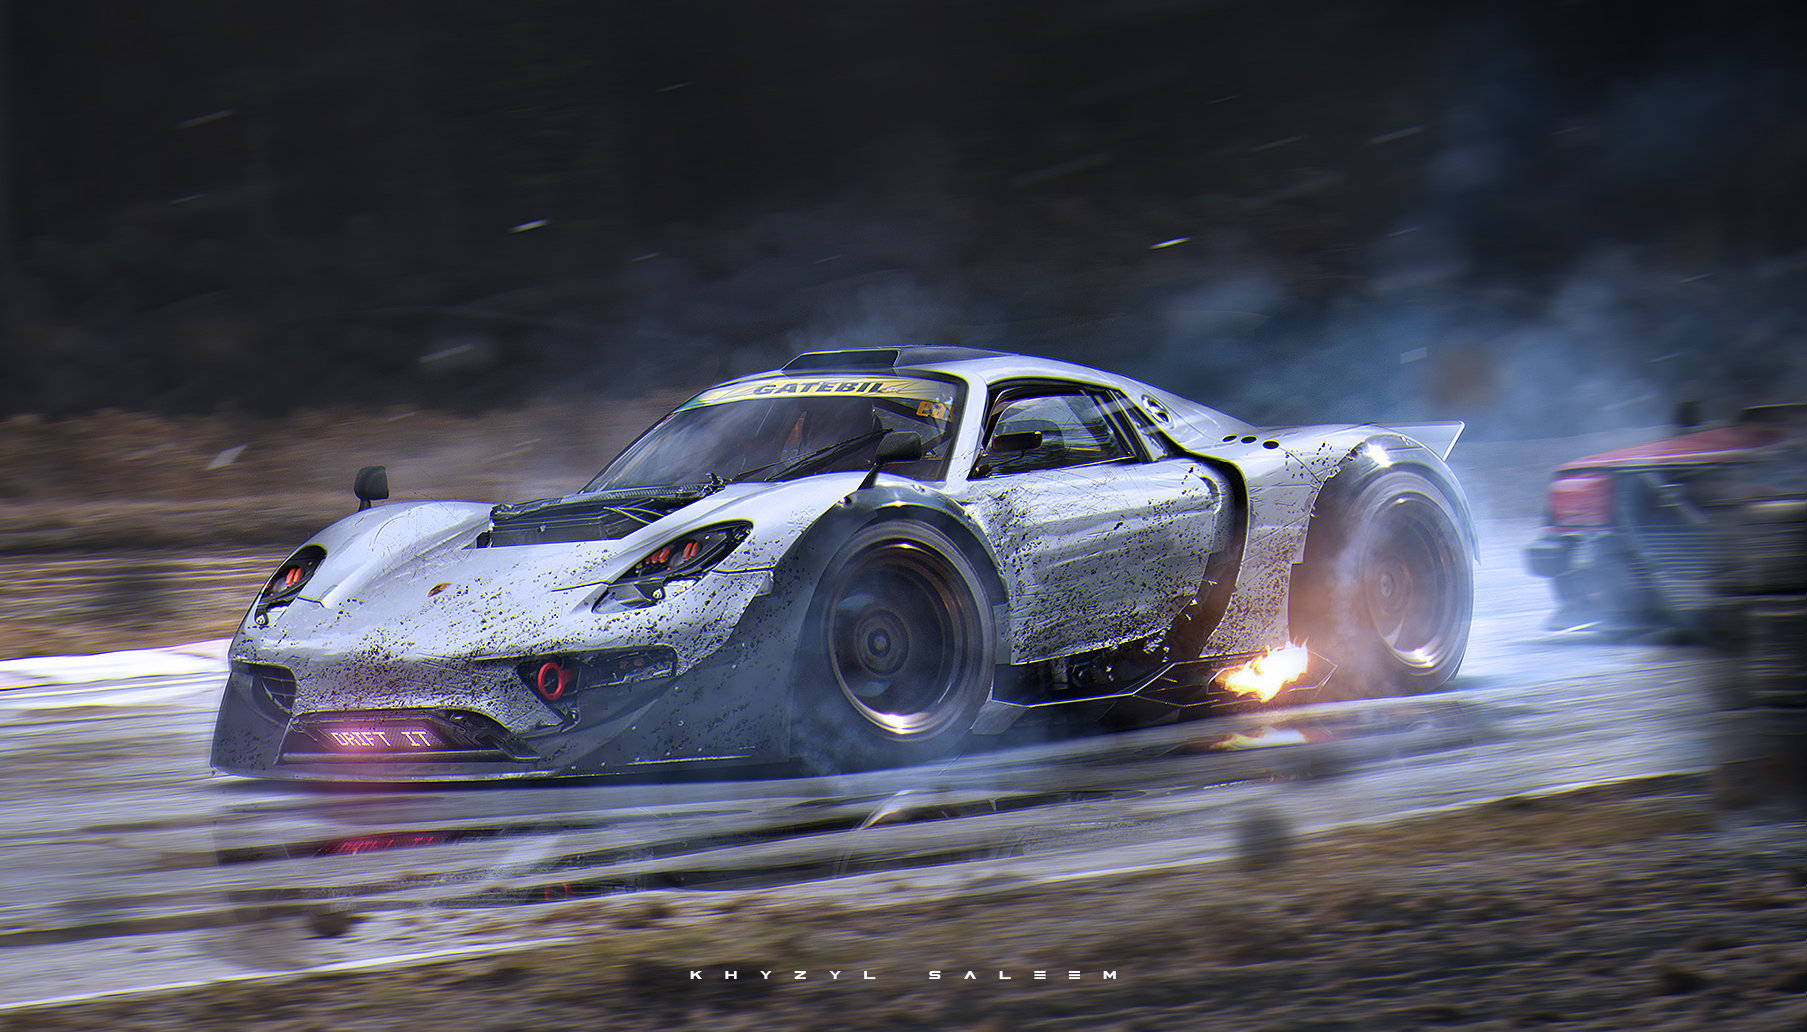 Khyzyl saleem 918driftlow